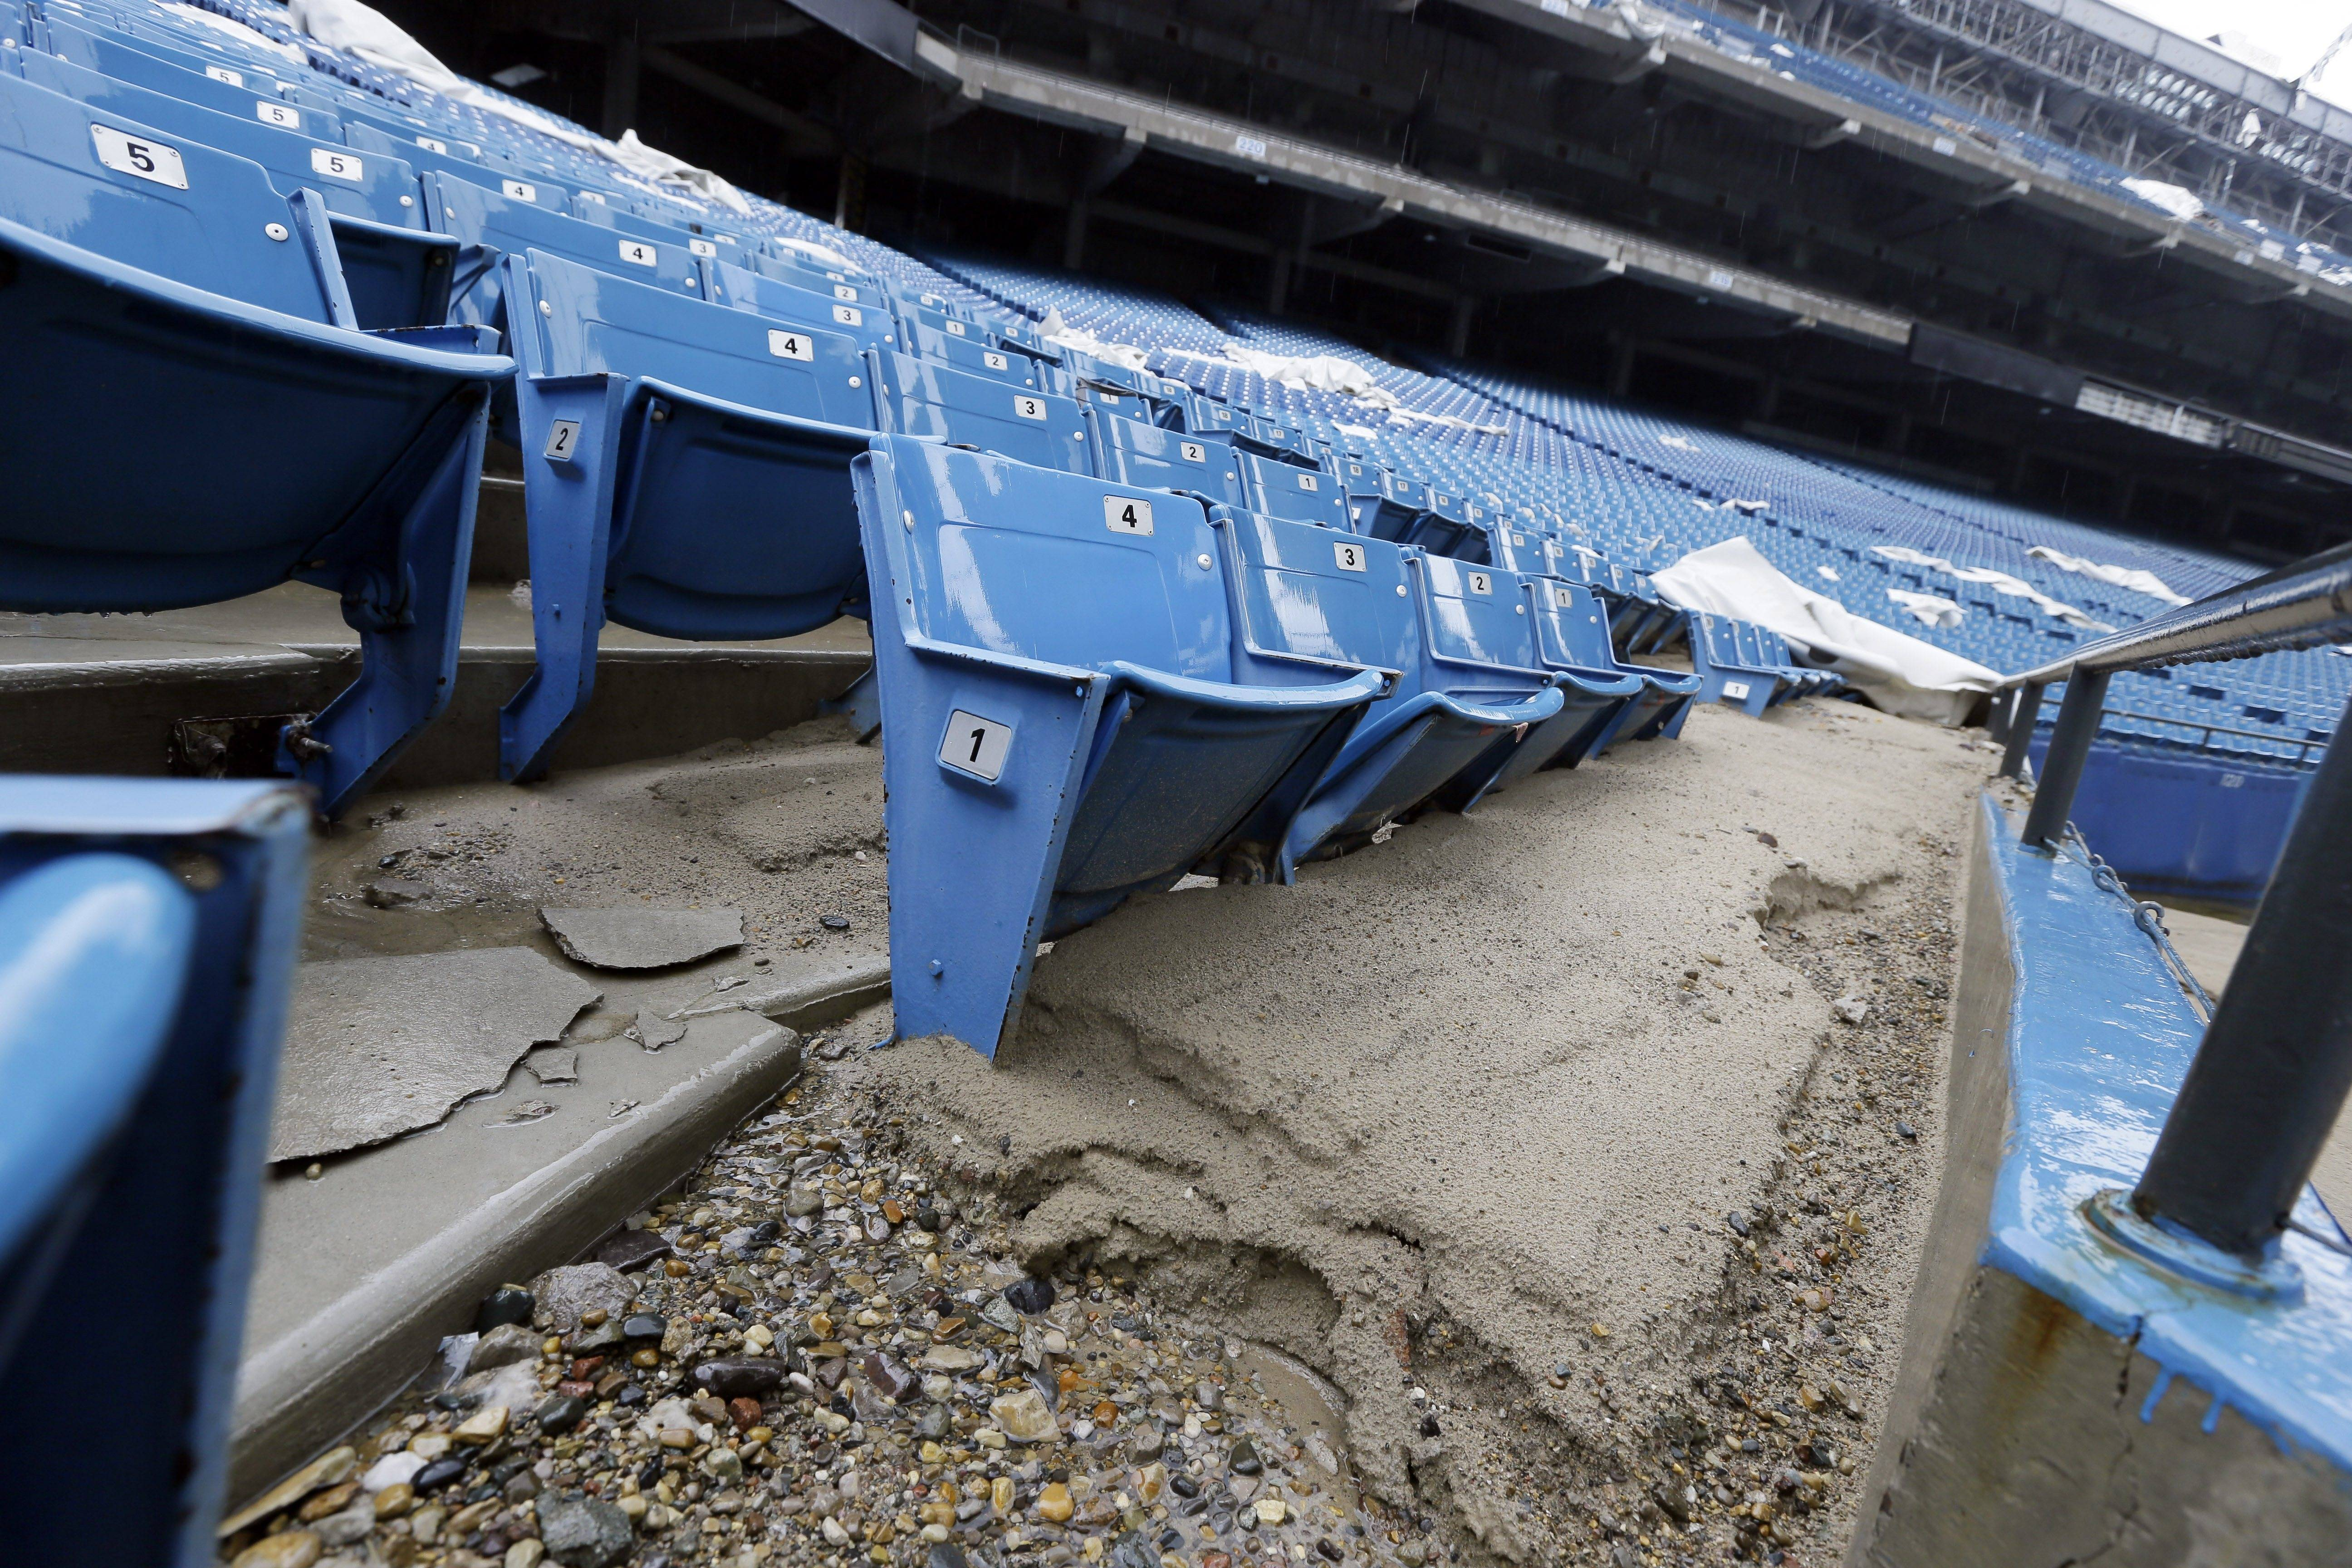 Foundation sand from cracked cement covers seats inside the Pontiac Silverdome in Pontiac, Mich. The 80,000-seat indoor stadium hosted the Super Bowl, the NBA finals, the World Cup, Wrestlemania and concerts by Elvis Presley, Led Zeppelin and the Rolling Stones.